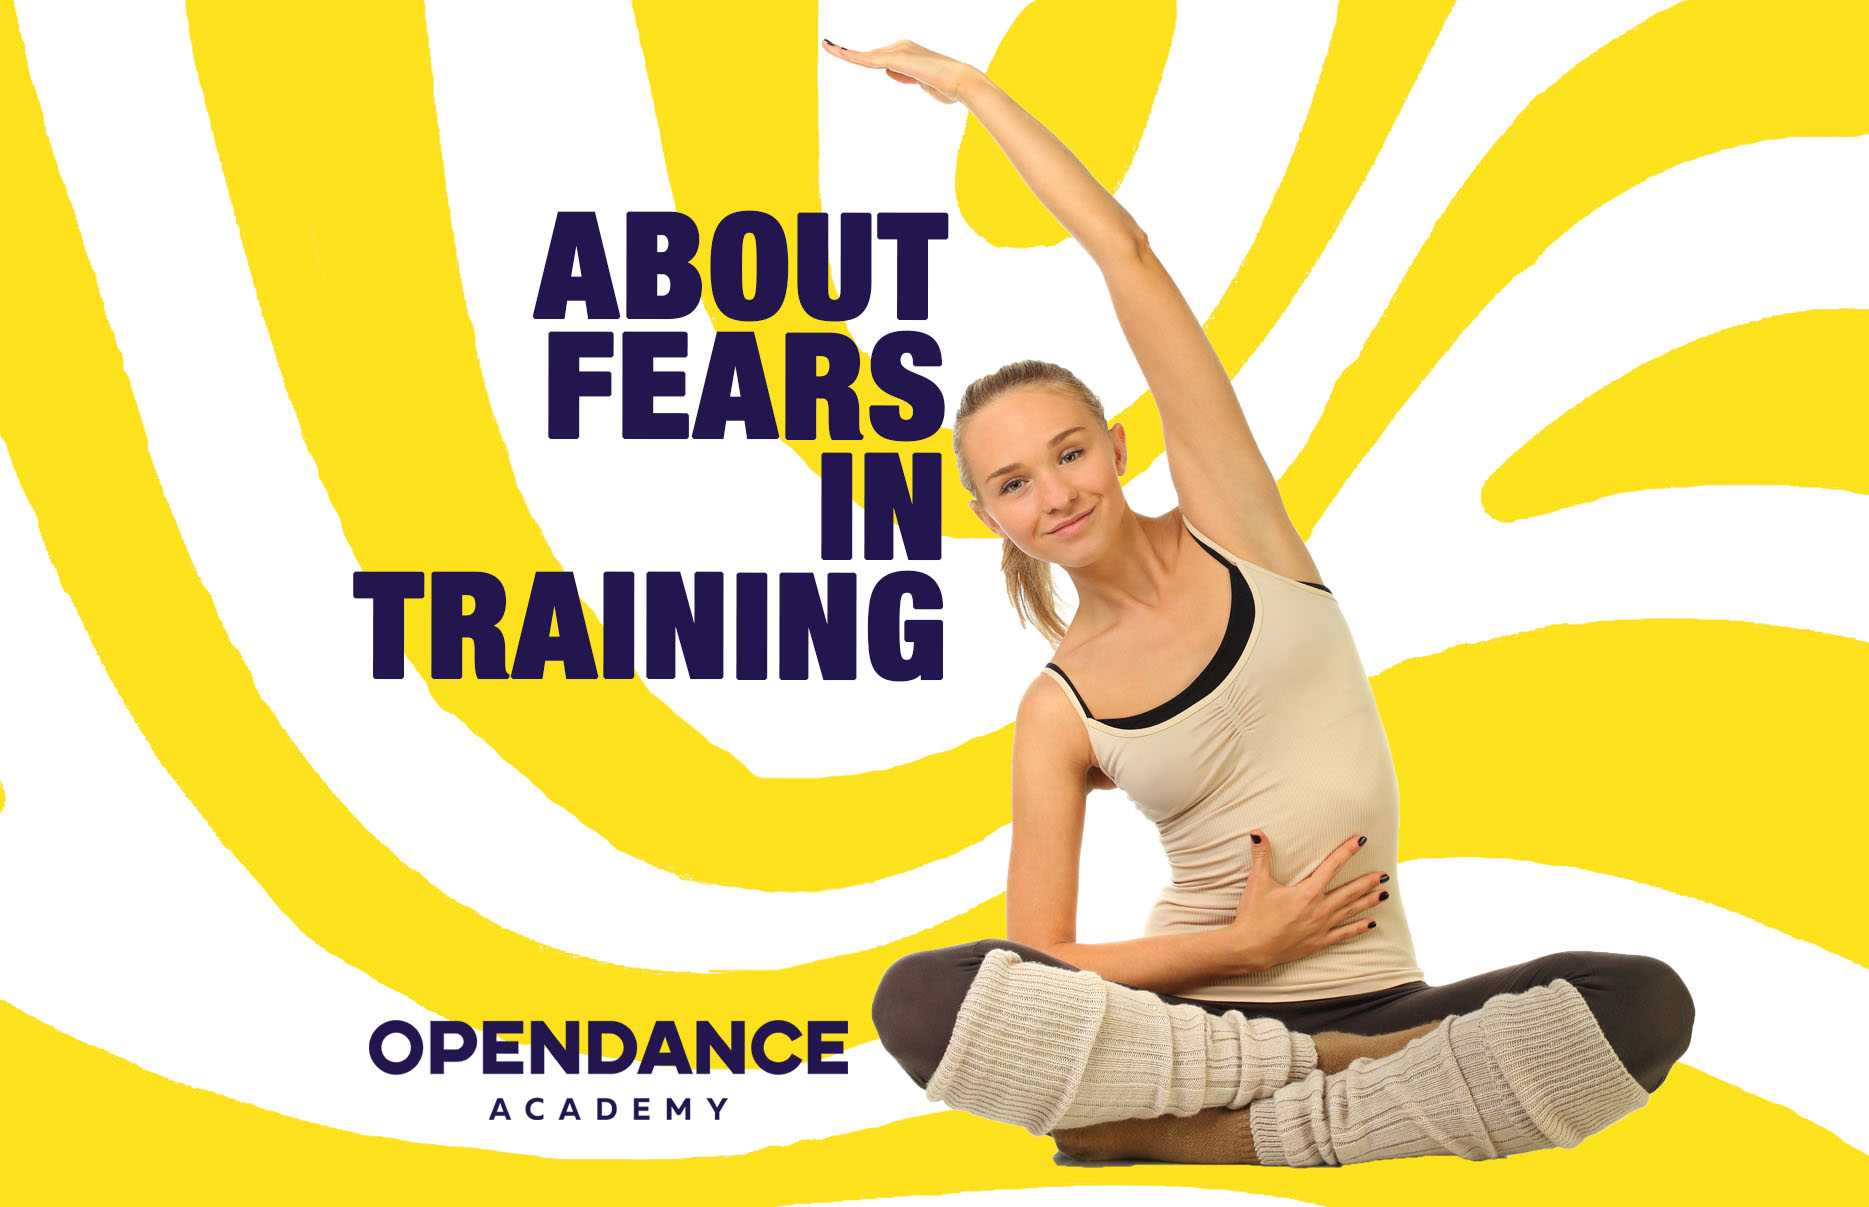 About Fears In Training